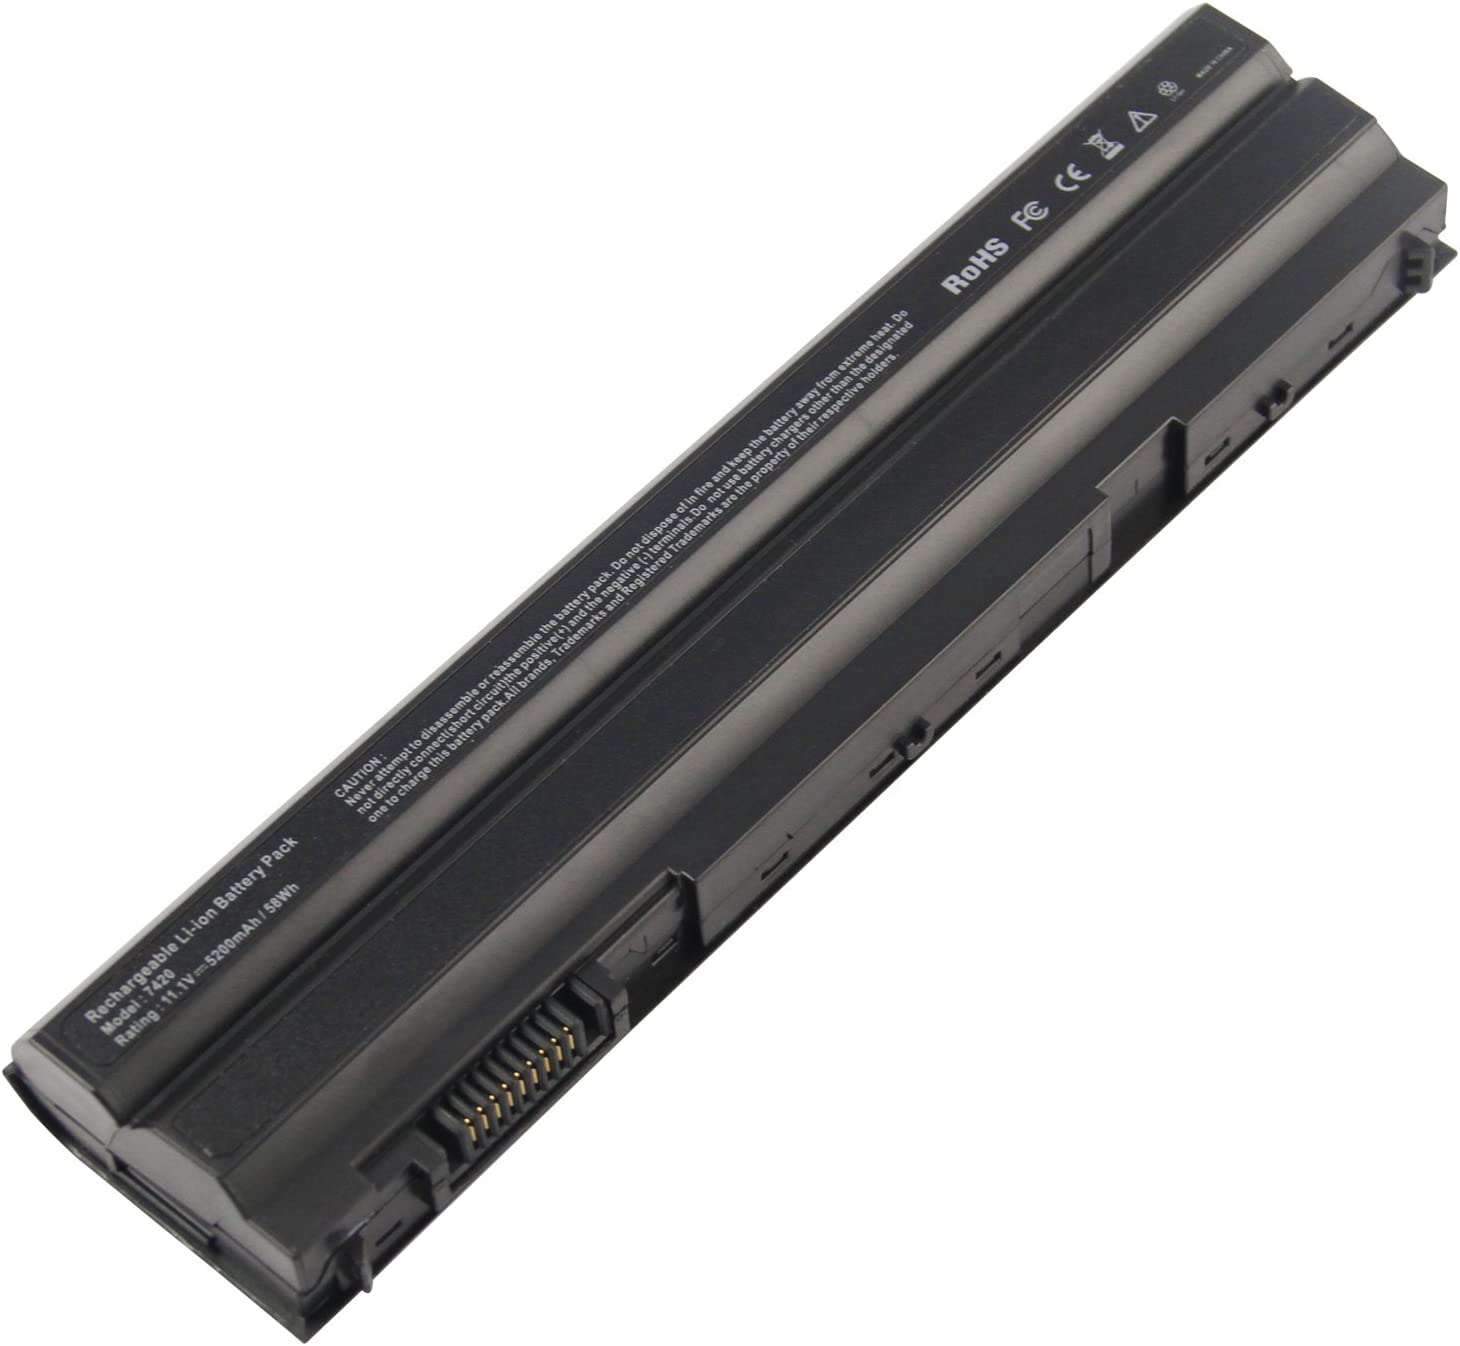 T54FJ Laptop Battery for Dell Latitude E5420 E5430 E5520 E5530 E6420 E6430 E6520 E6530 Inspiron 4420 5420 5425 7420 4520 5520 5525 7520 4720 5720 7720 M421R M521R N4420